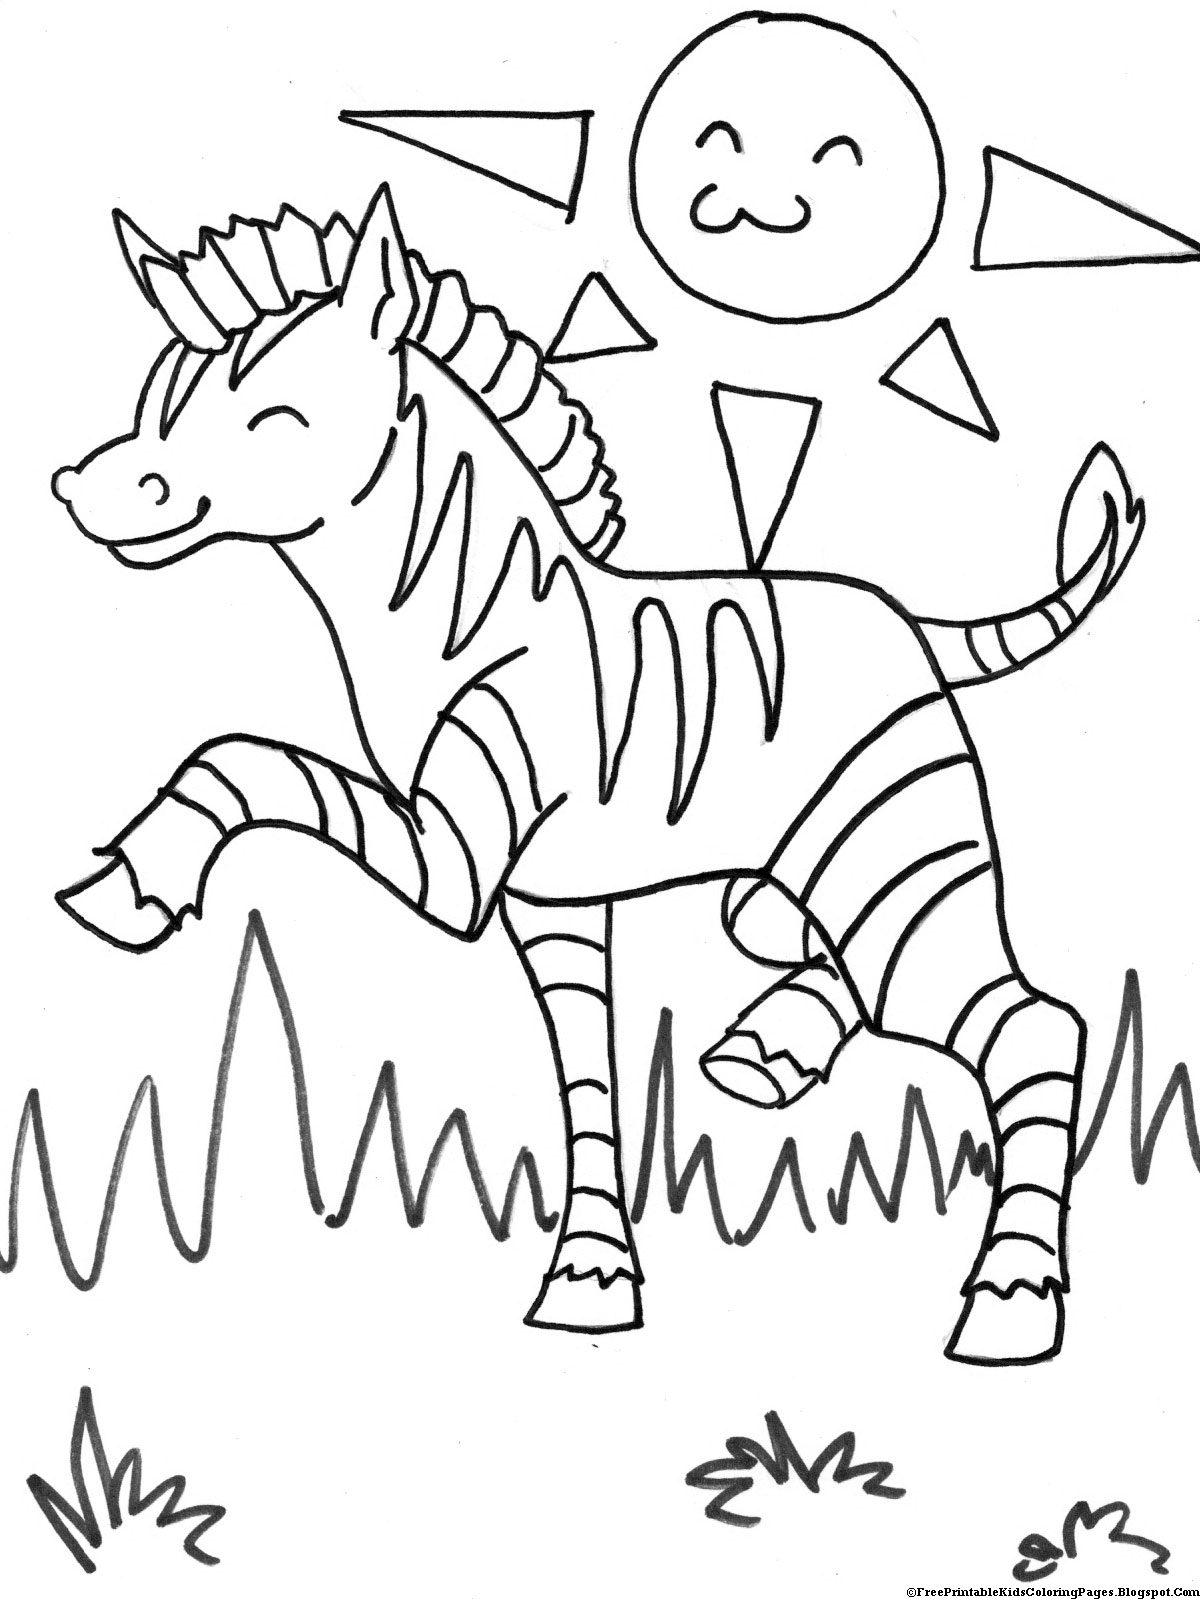 coloring pages for children free printable tangled coloring pages for kids pages for children coloring